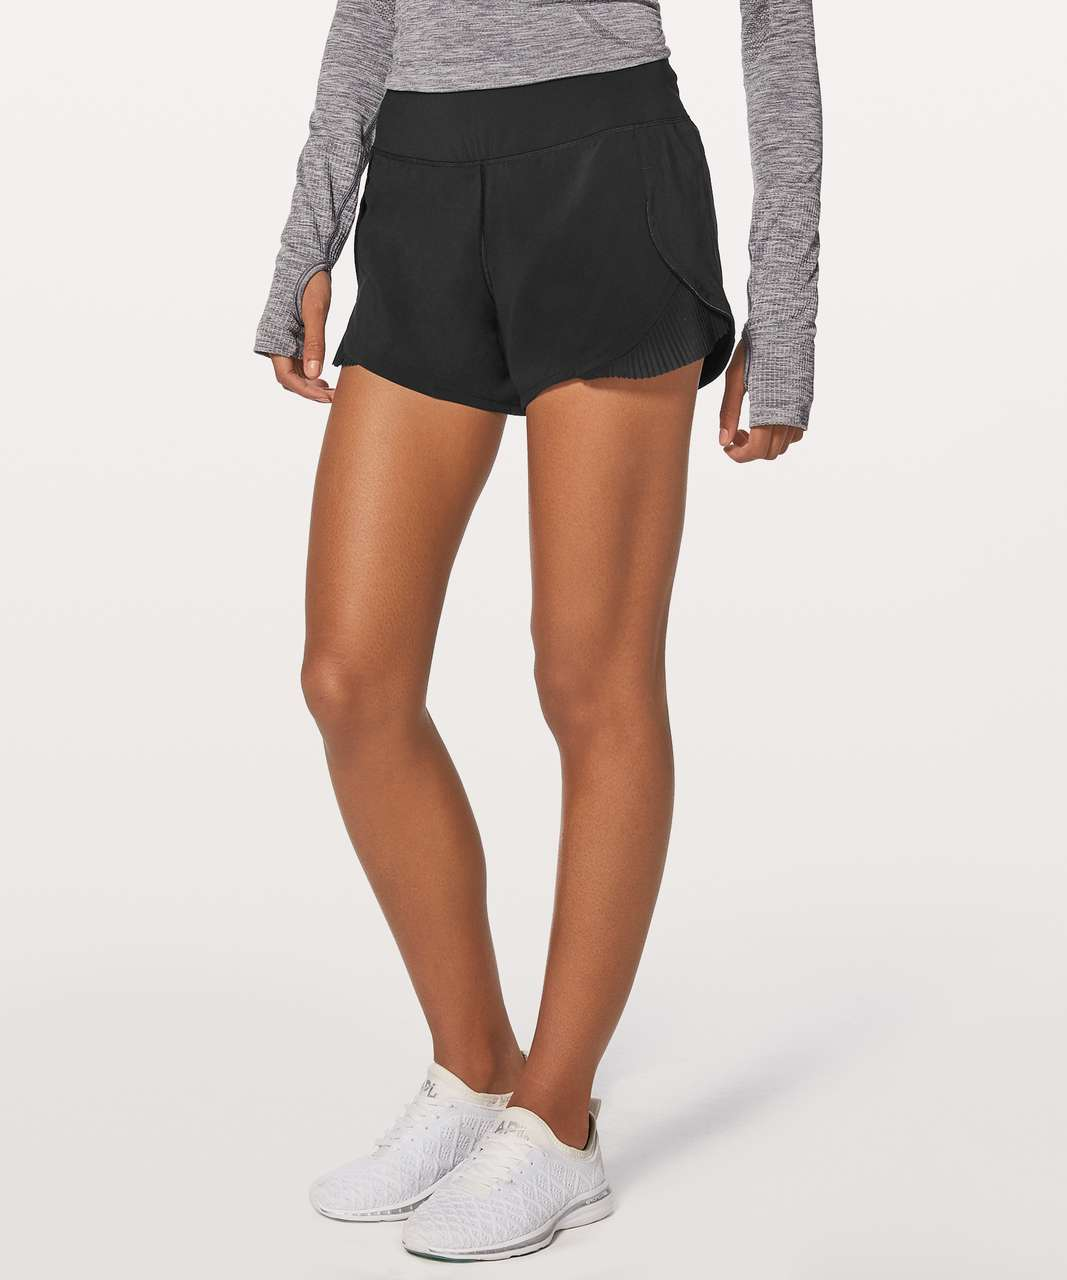 "Lululemon Play Off The Pleats Short 3"" - Black"